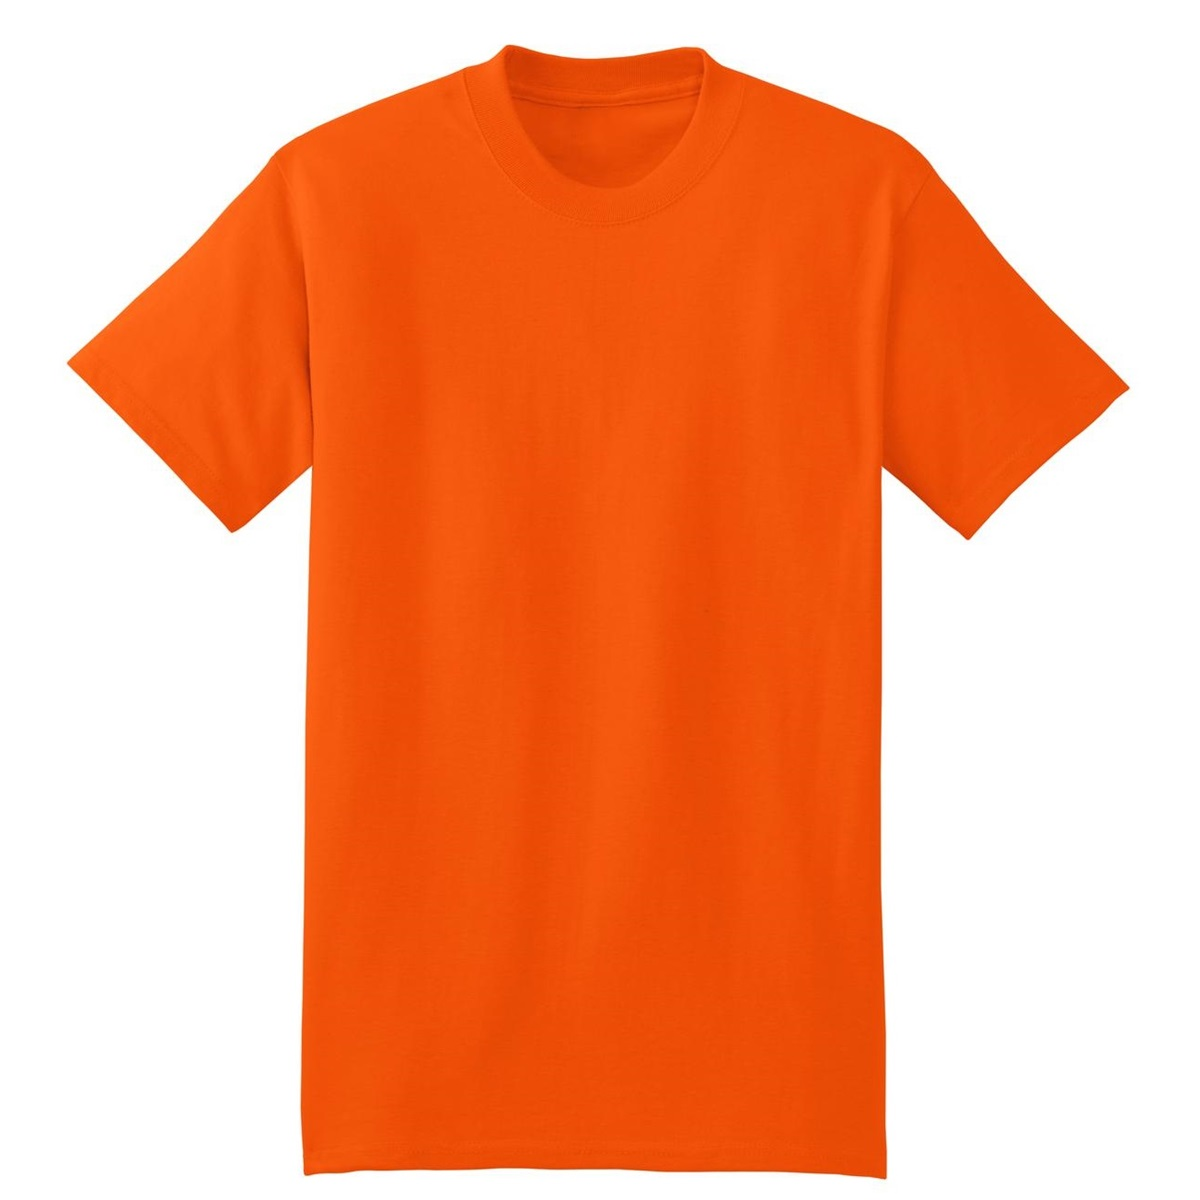 Product Description The Hanes Cool DRI t-shirt for men is a polyester performance tee that.